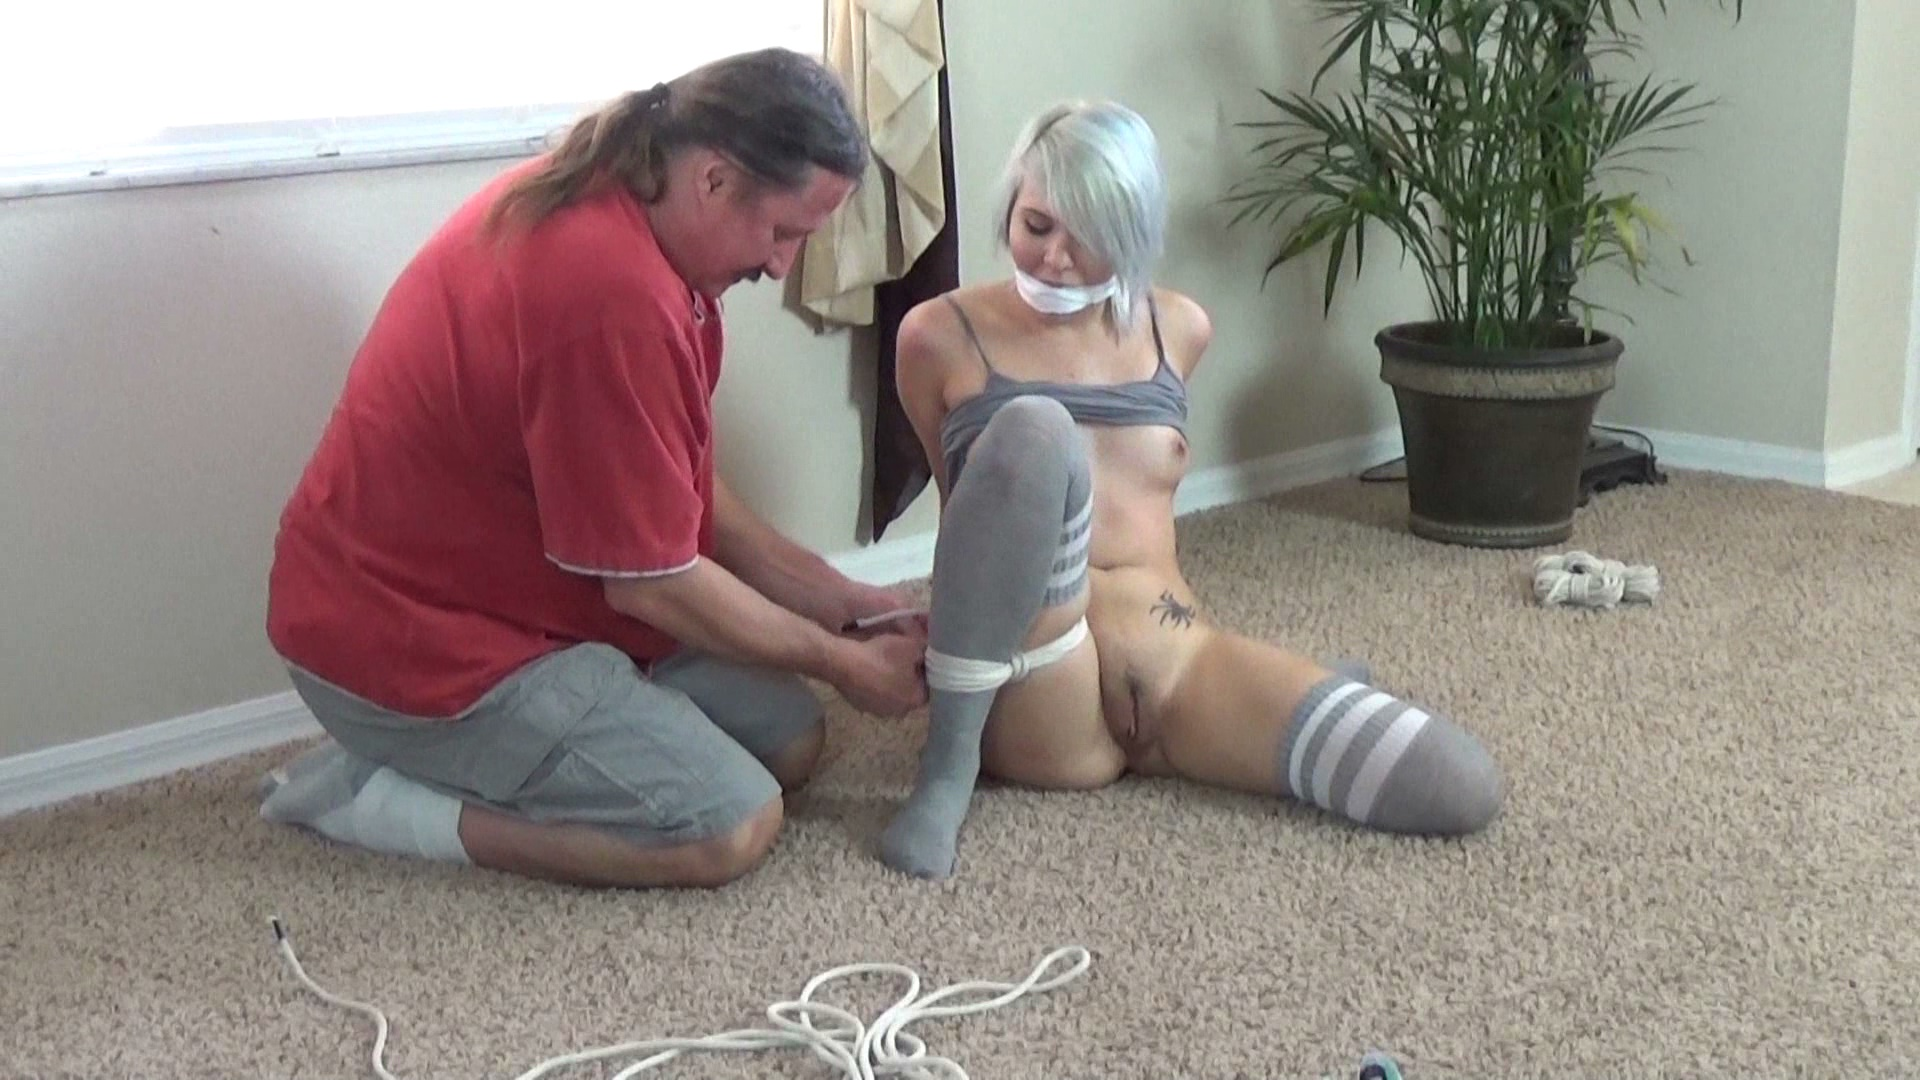 After Daddy Tied Me Up He Put His Fingers In My Tight 18 Year Old Pussy